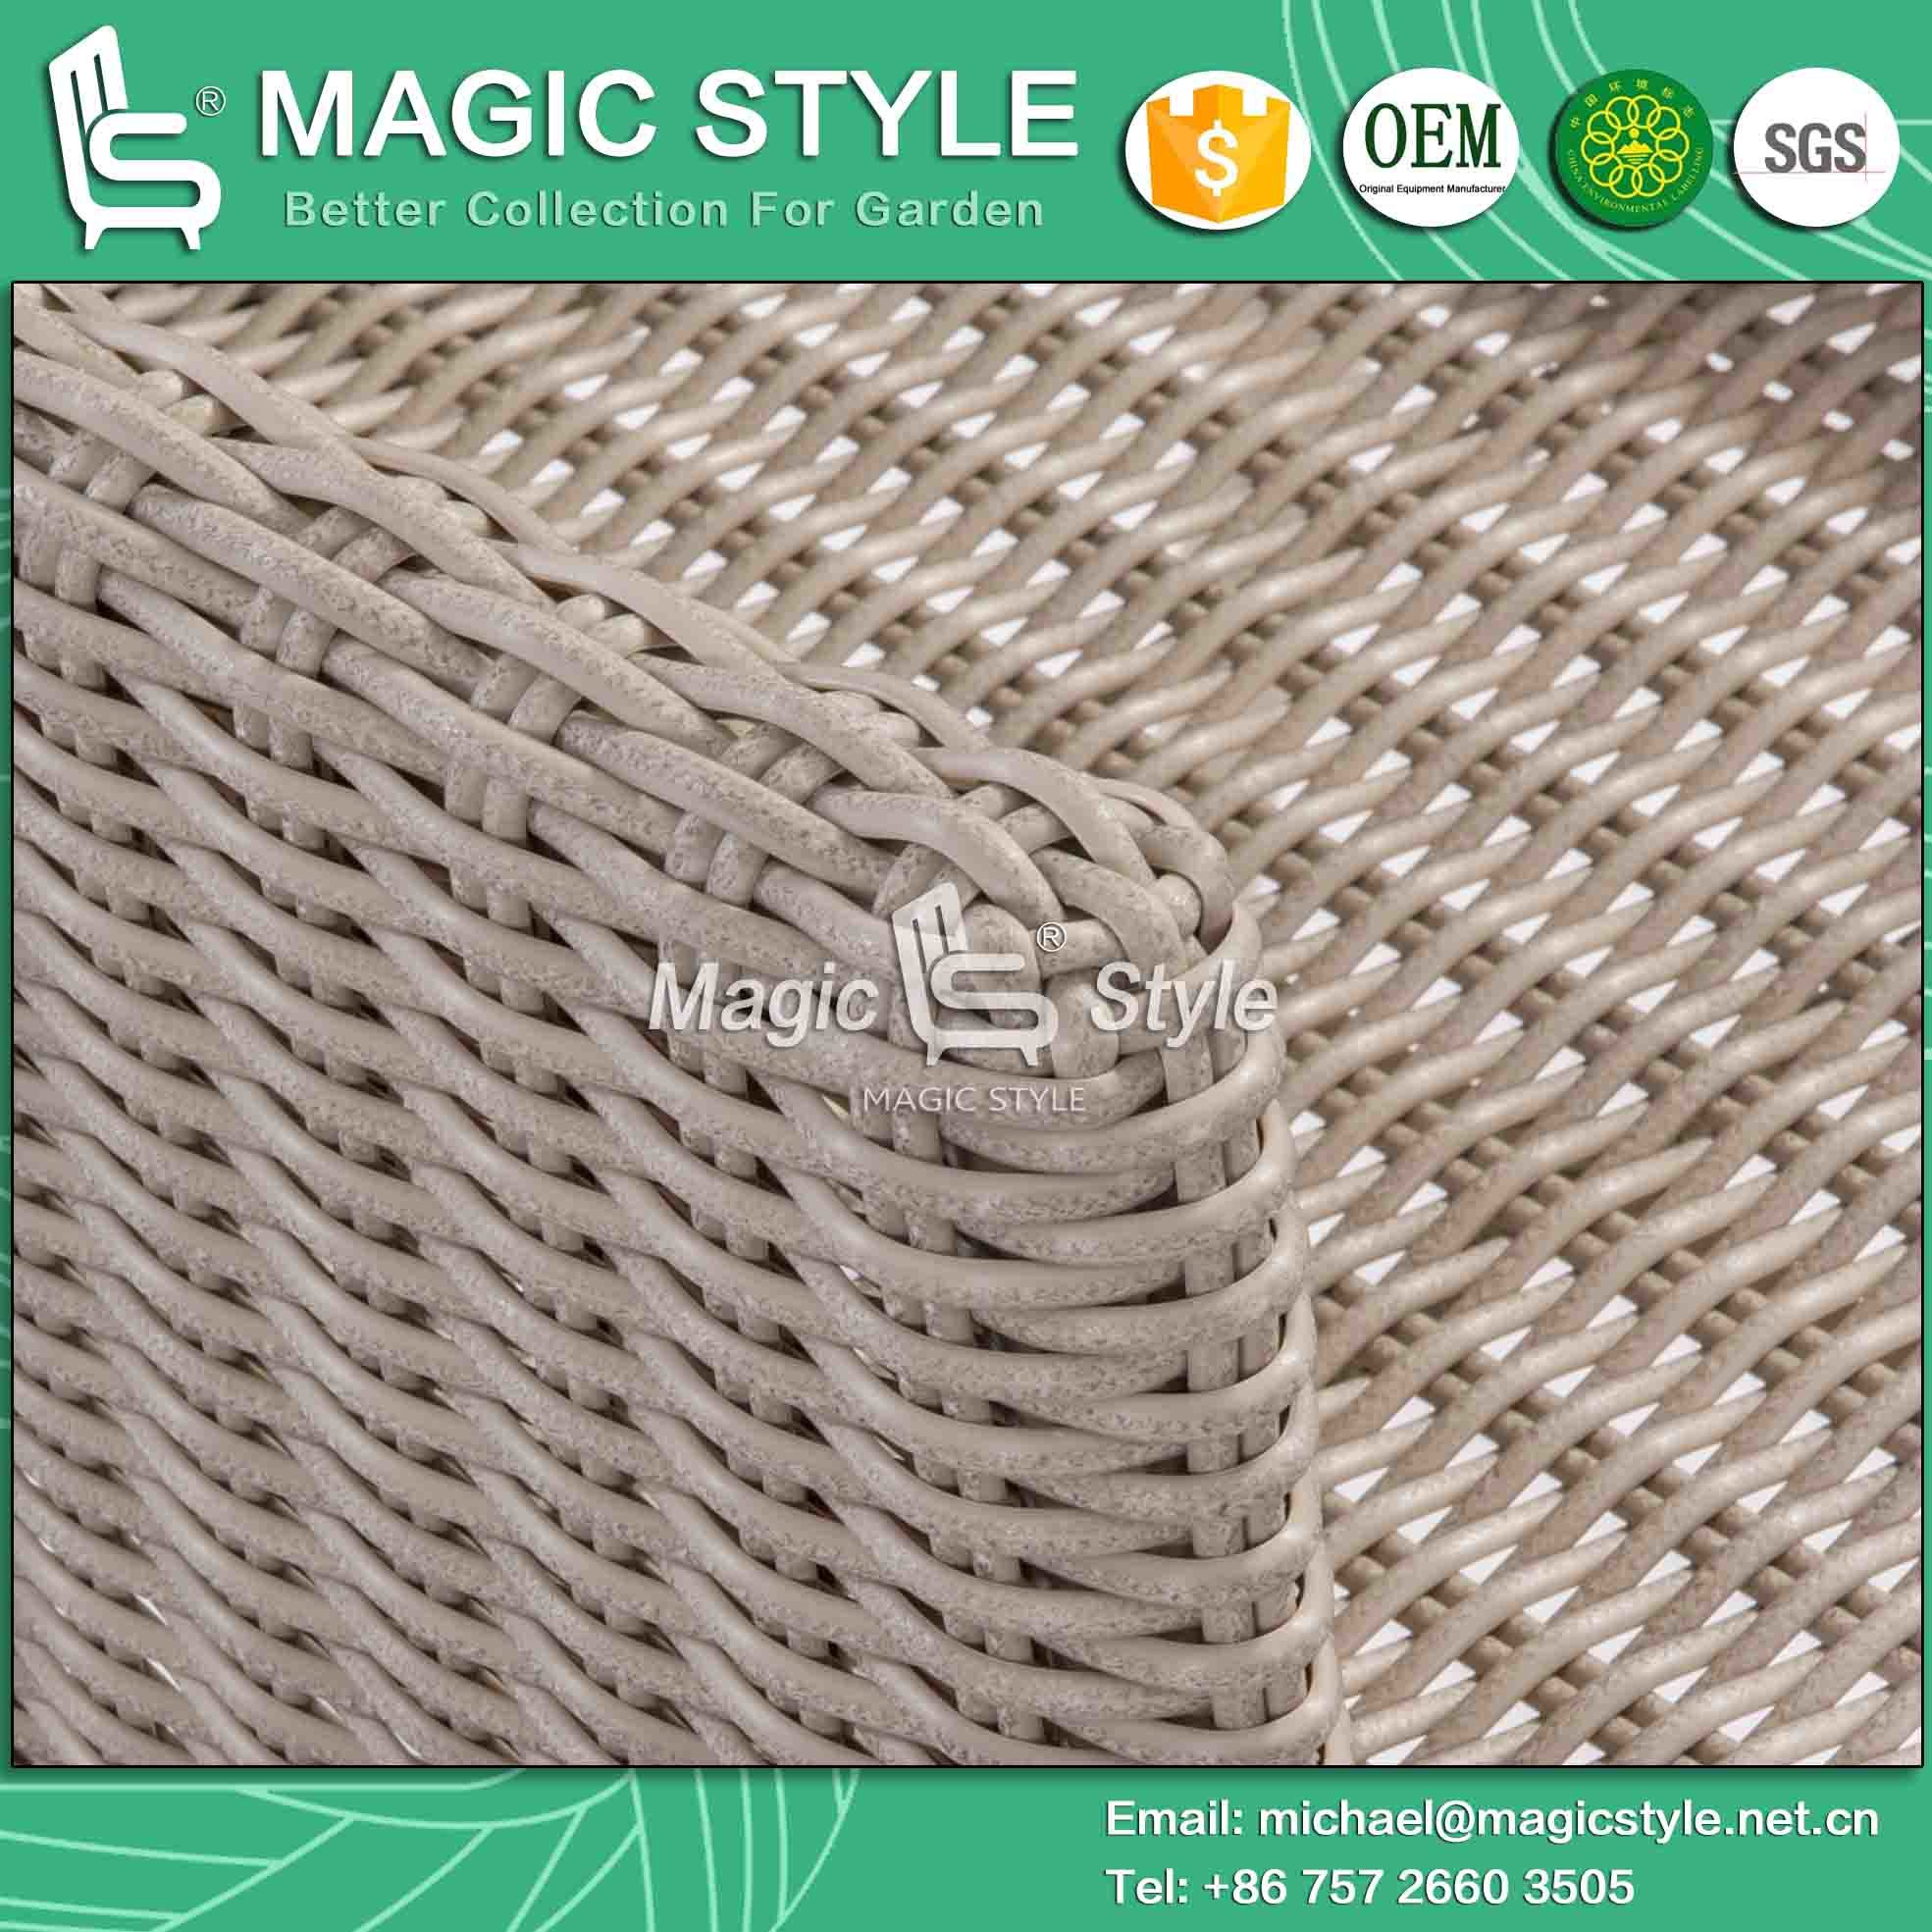 Outdoor Dining Chair with Arm Rattan Wicker Dining Chair Hotel Project Club Chair Garden Rattan Chair Patio Dining Chair